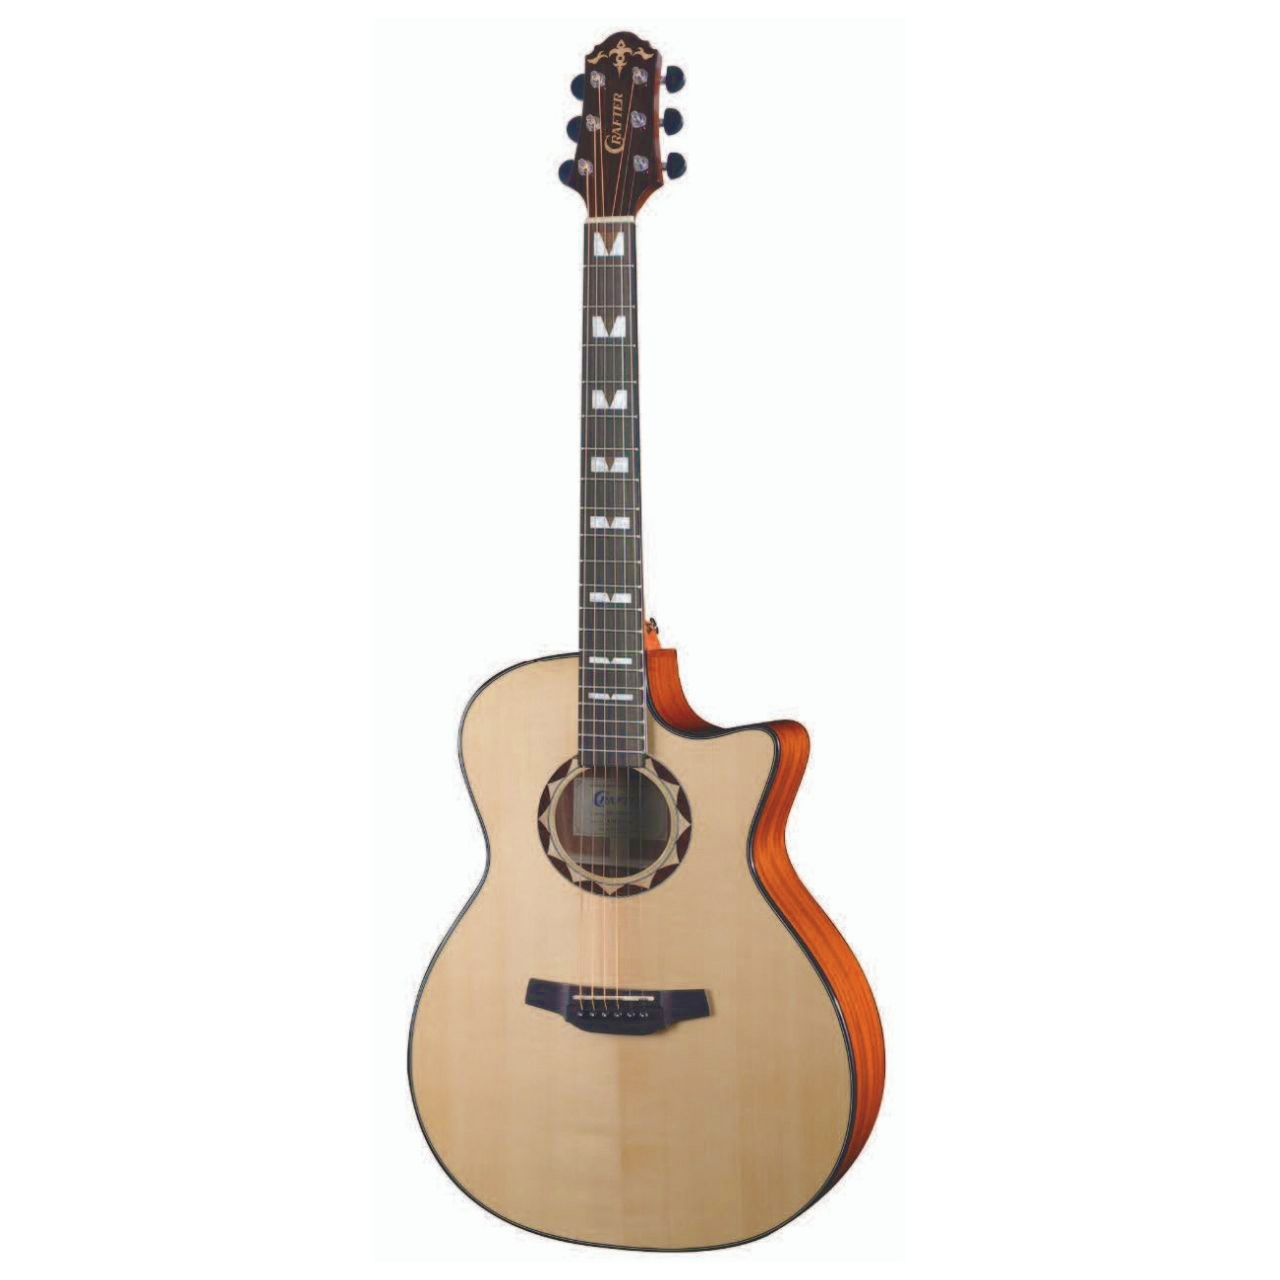 Violão Crafter HG-520 CE/N Grand Audithorium Natural  - TranSom Áudio e Música